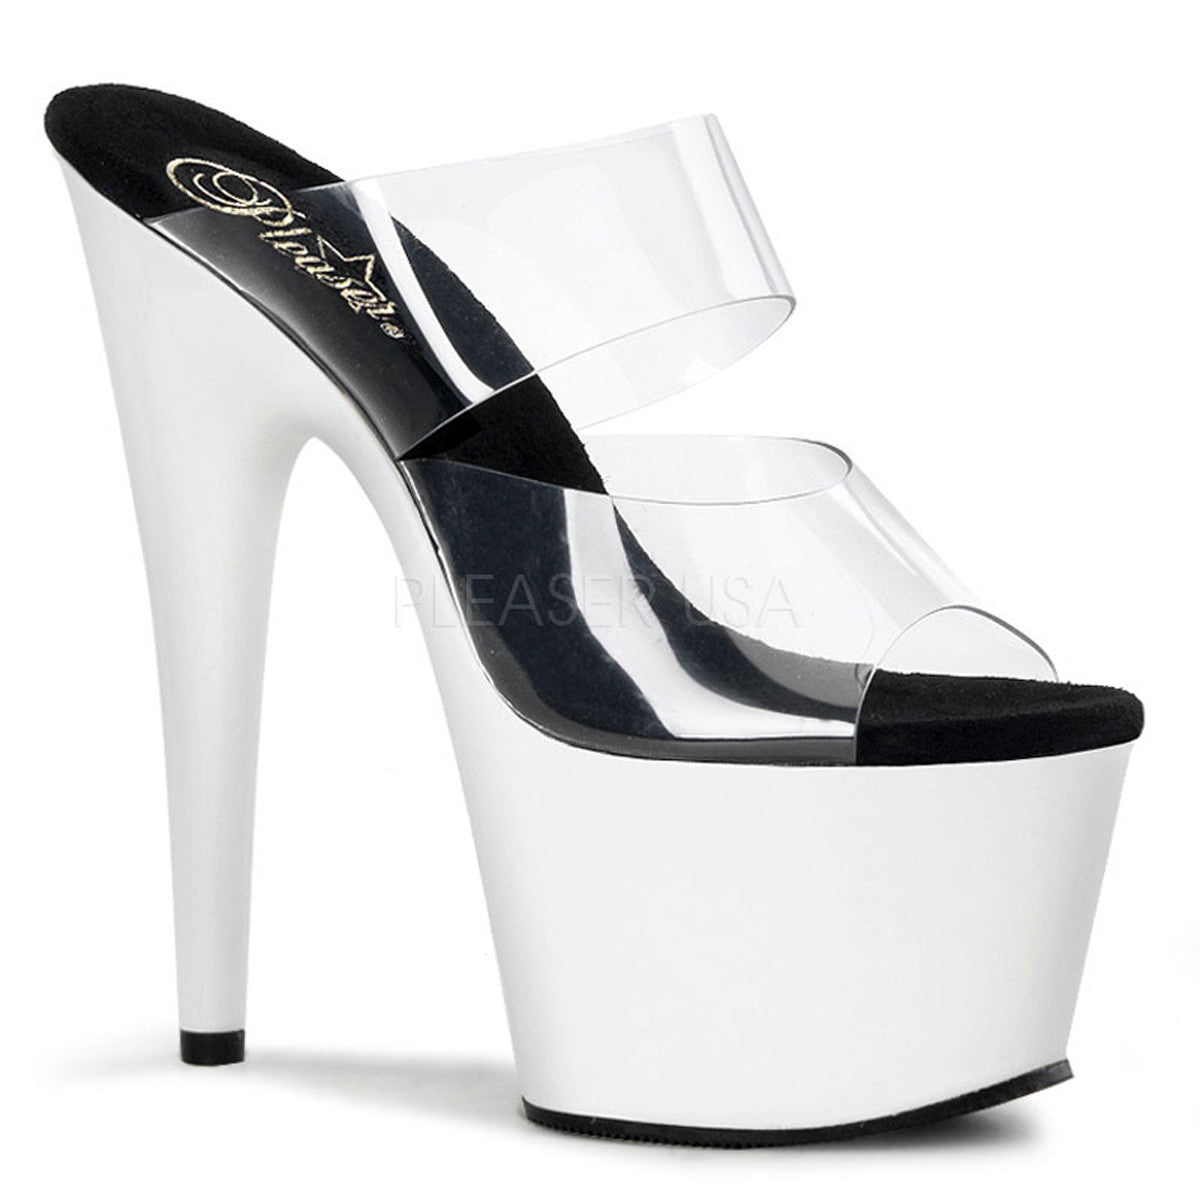 PLEASER ADORE-702UV Clear-Neon White Stiletto Slides - Shoecup.com - 1